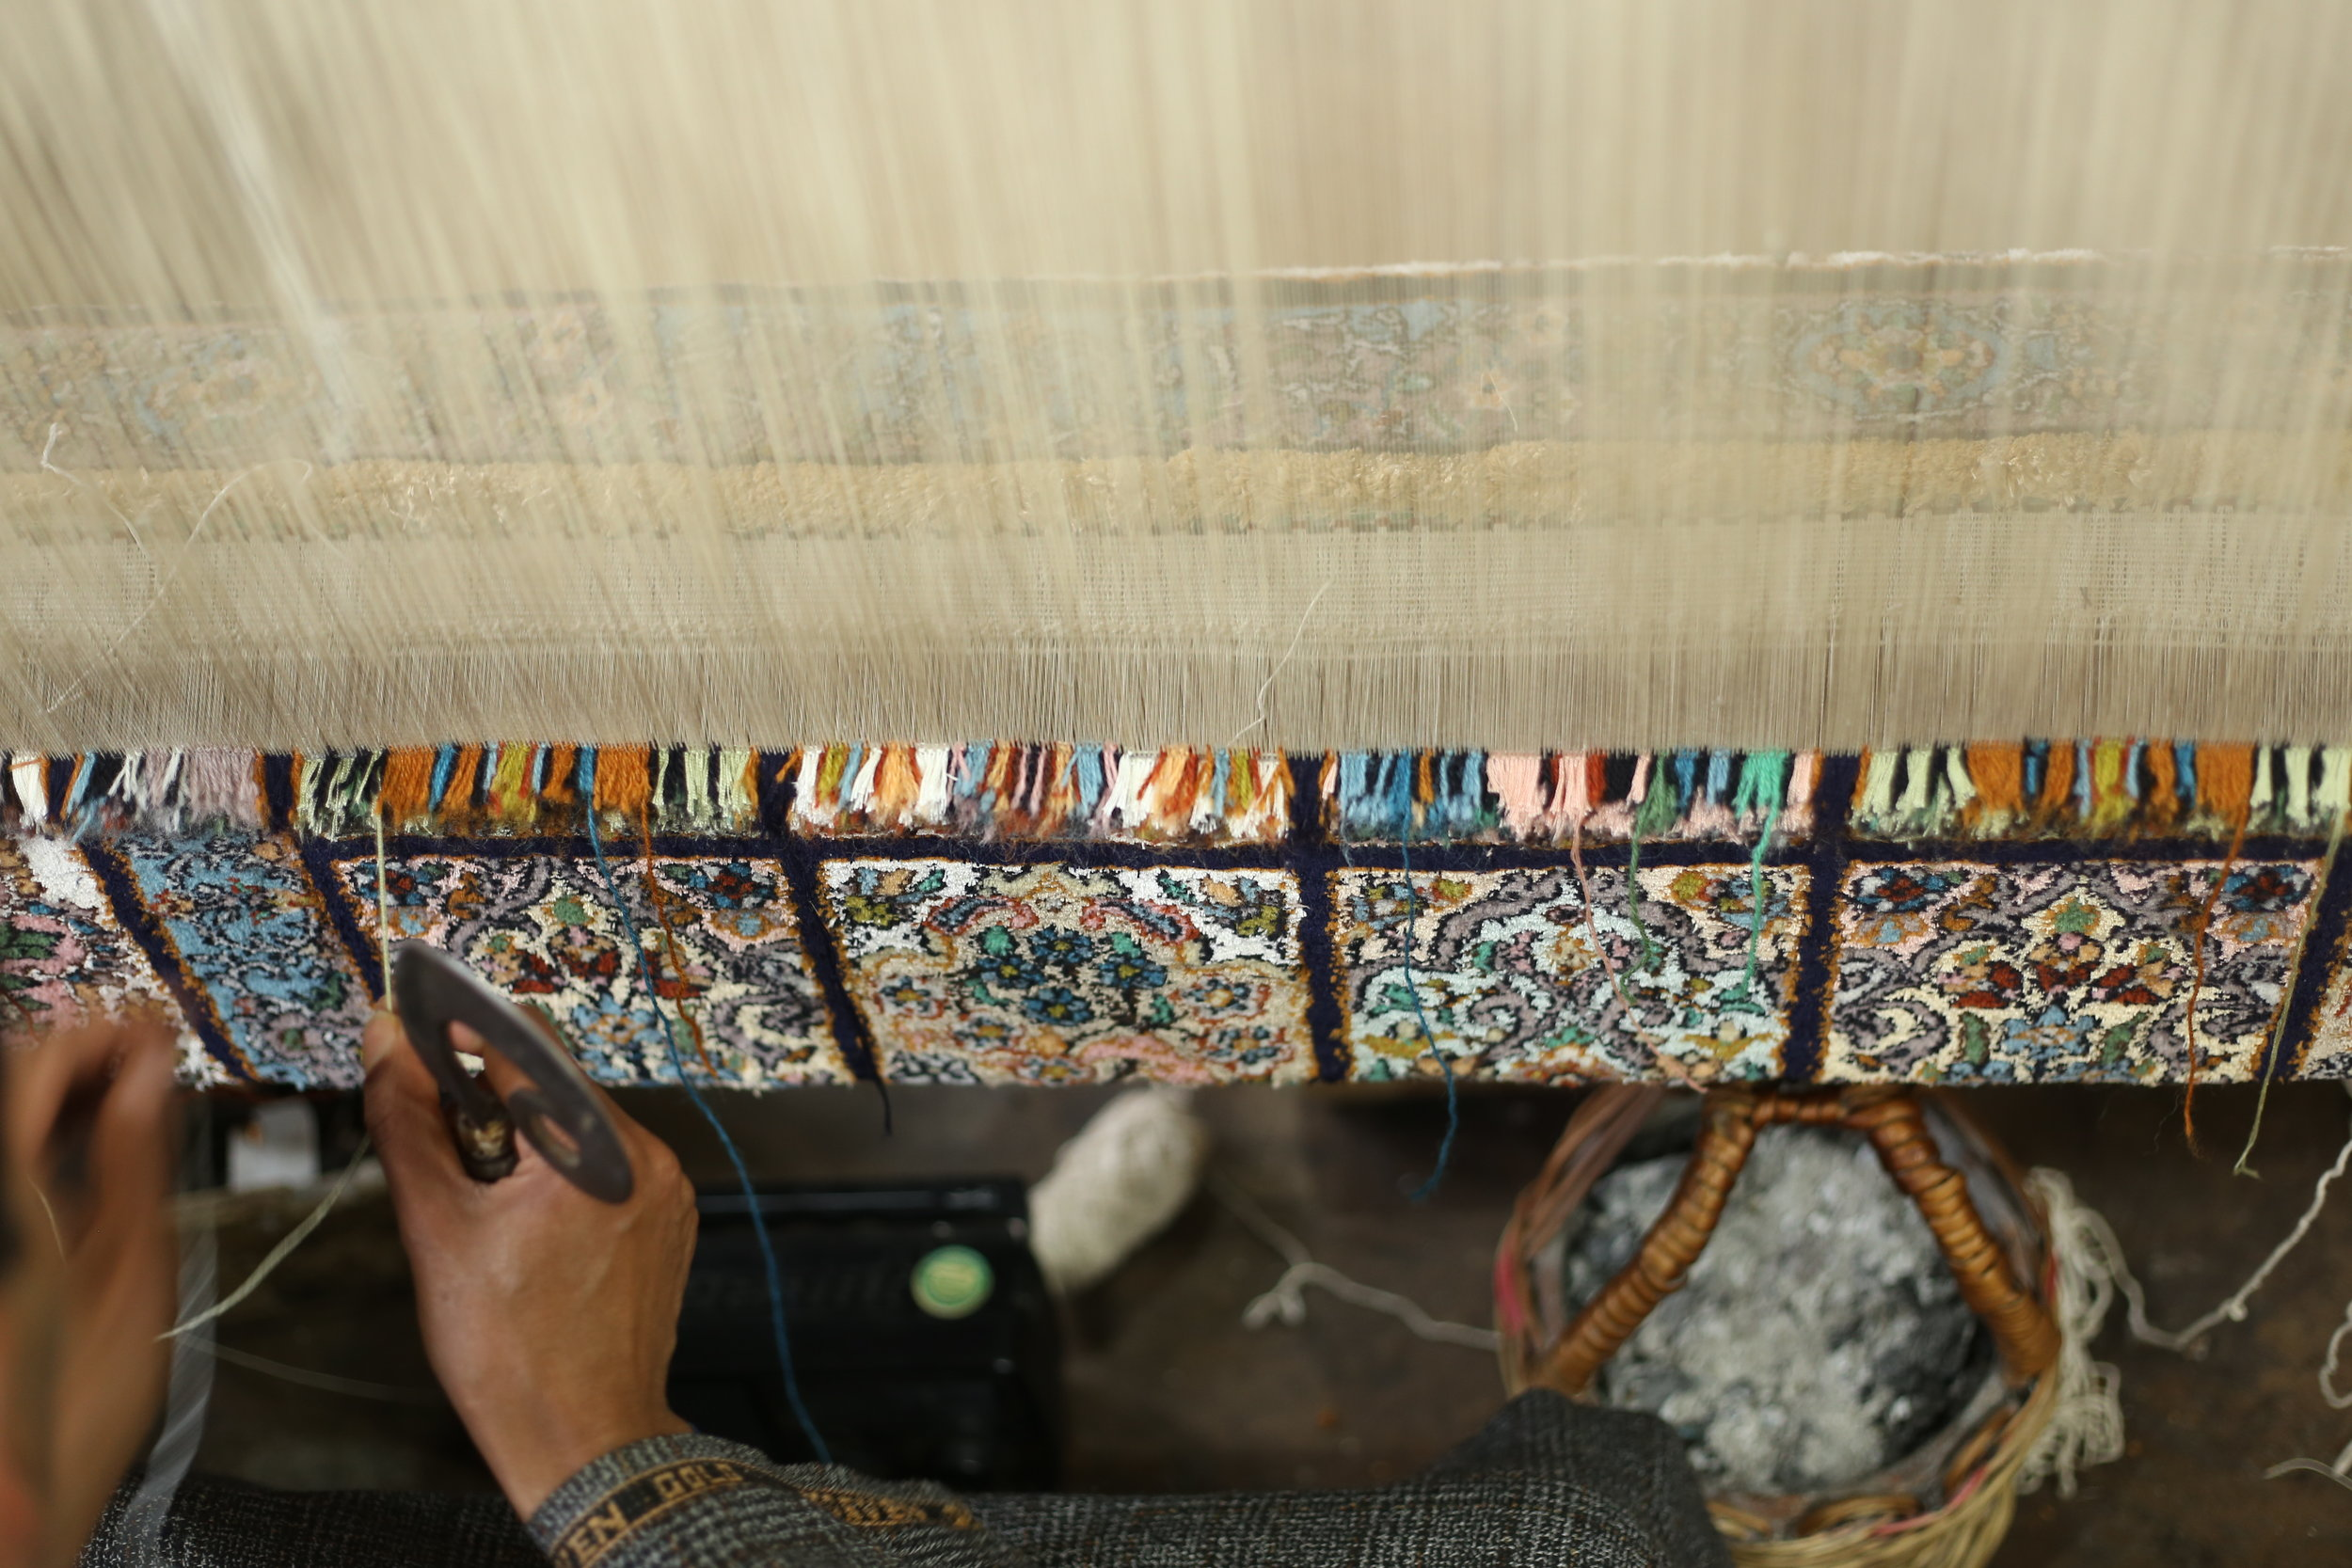 A view of the carpet being made.